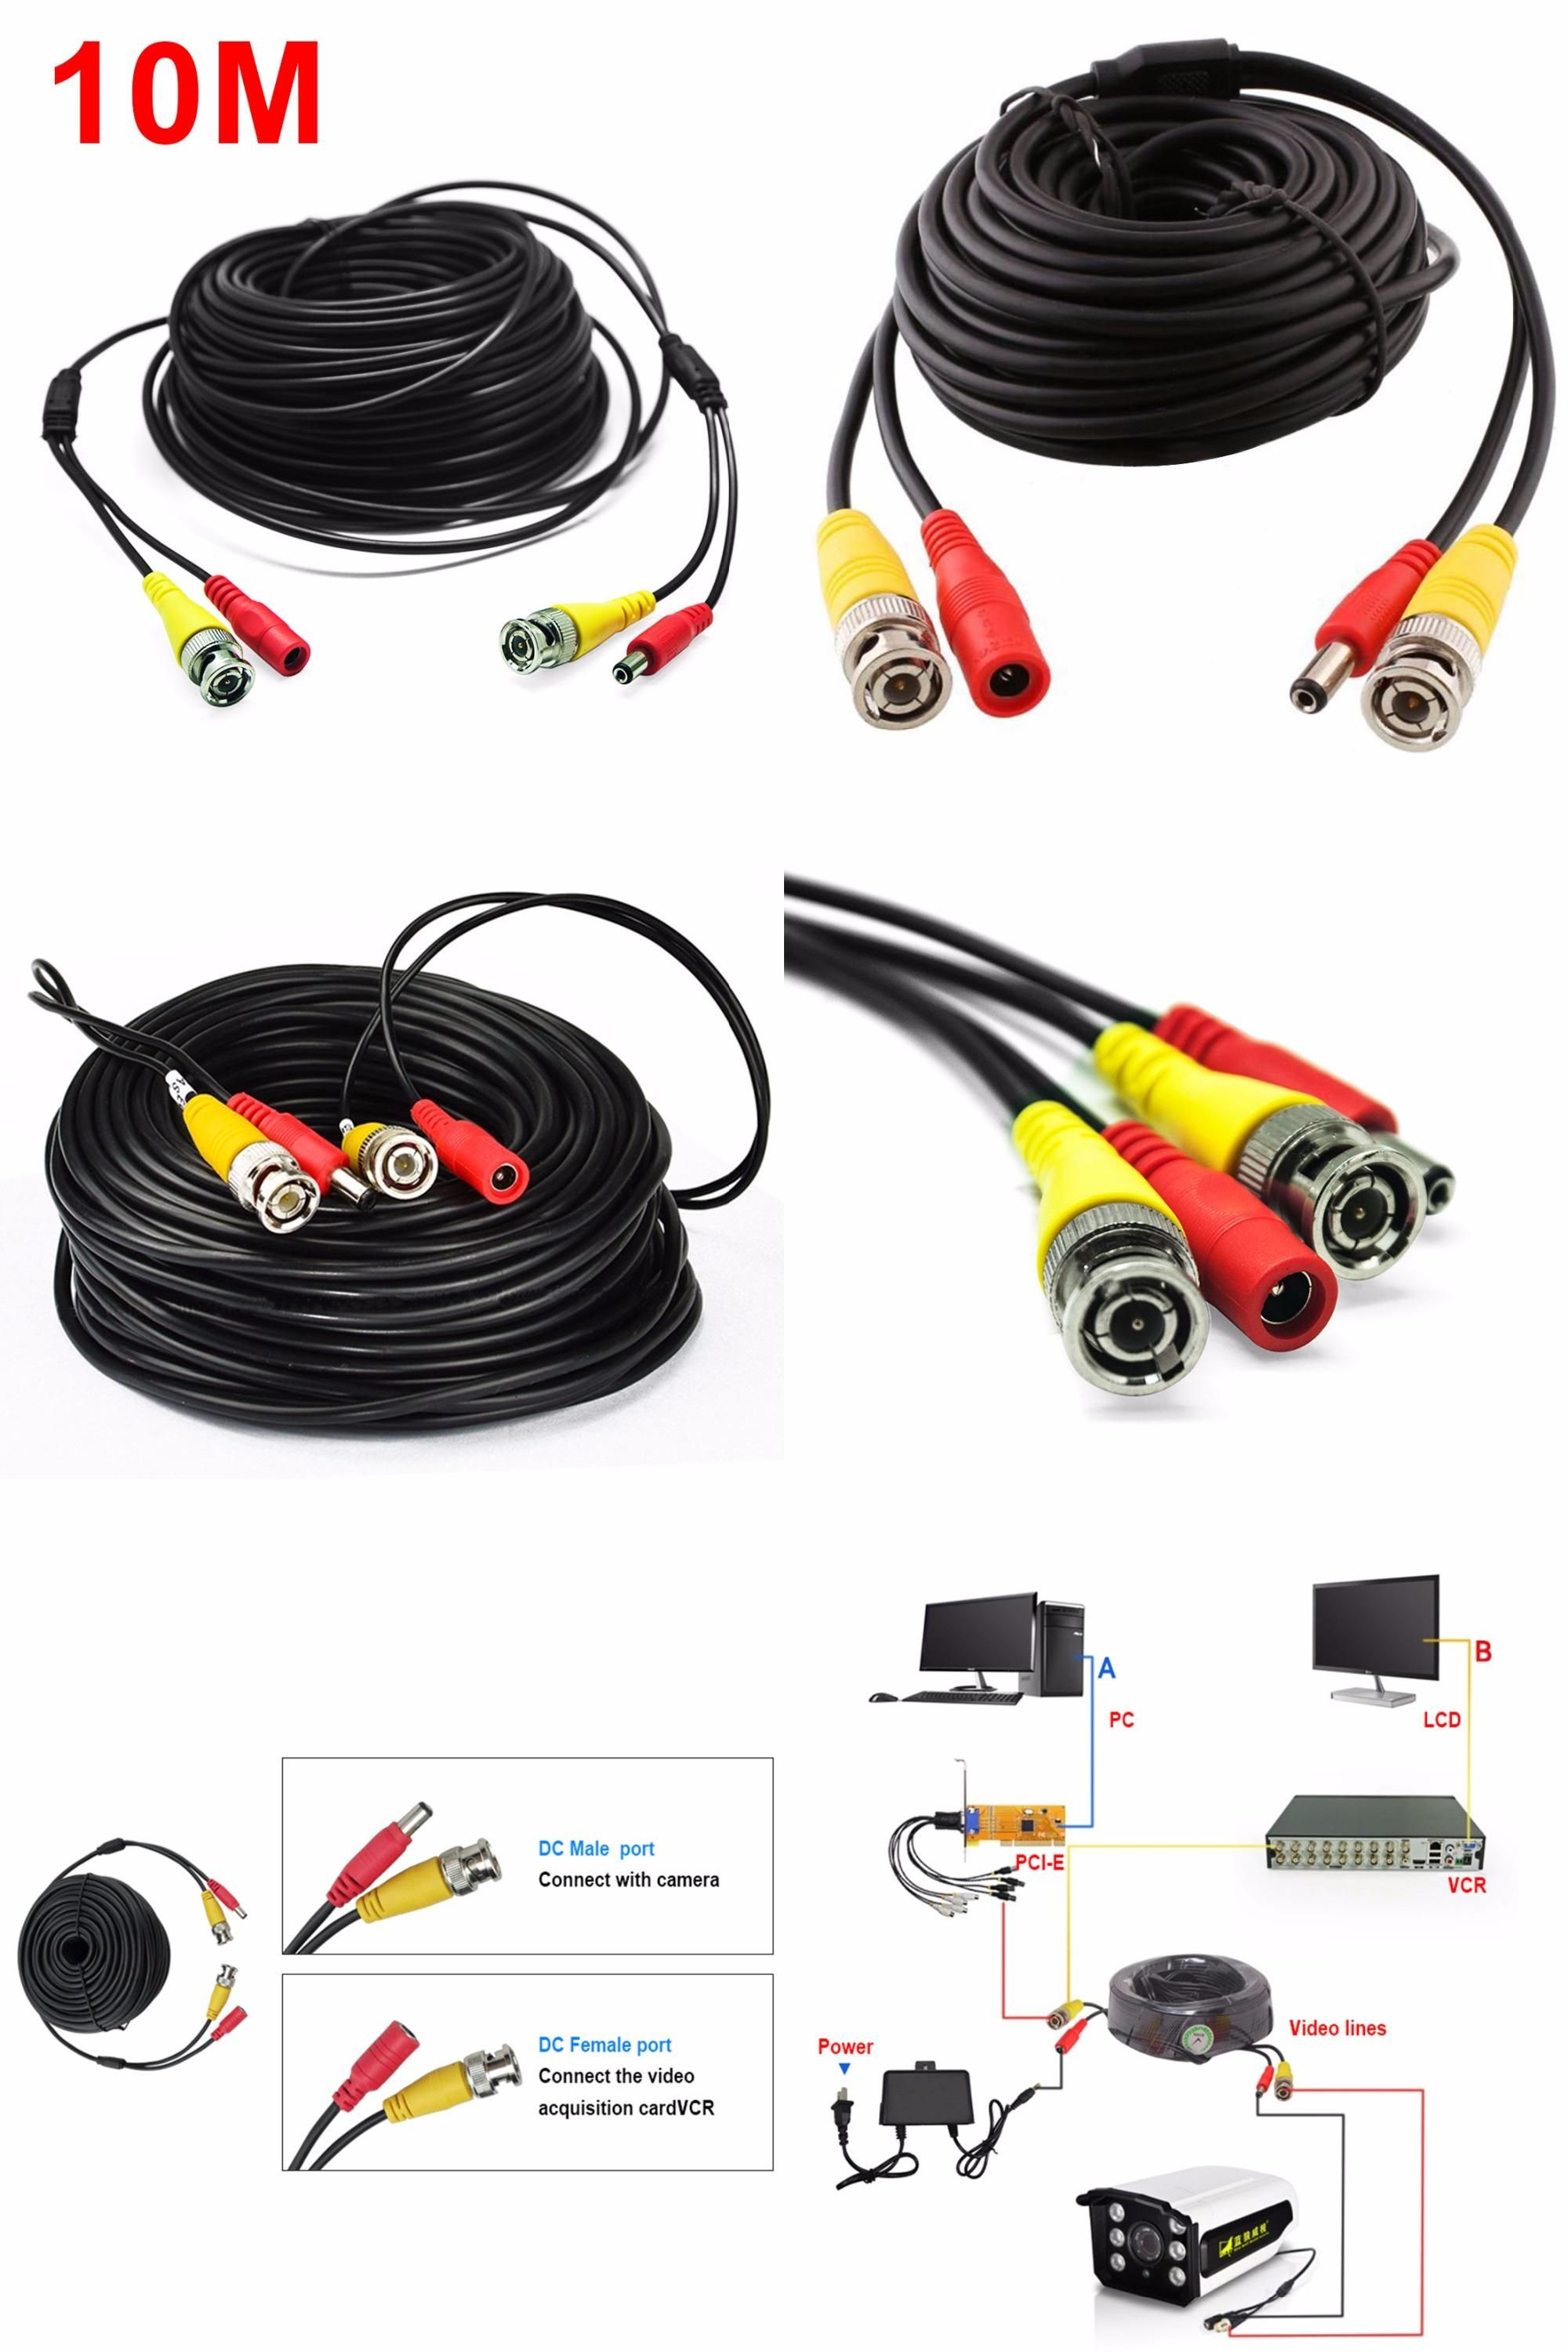 Visit To Buy 33feet 10m Black Bnc Rca Audio Video Power Extension Cable Dvr Surveillance Wire For Cctv Security Cctv Security Cameras Security Camera Camera